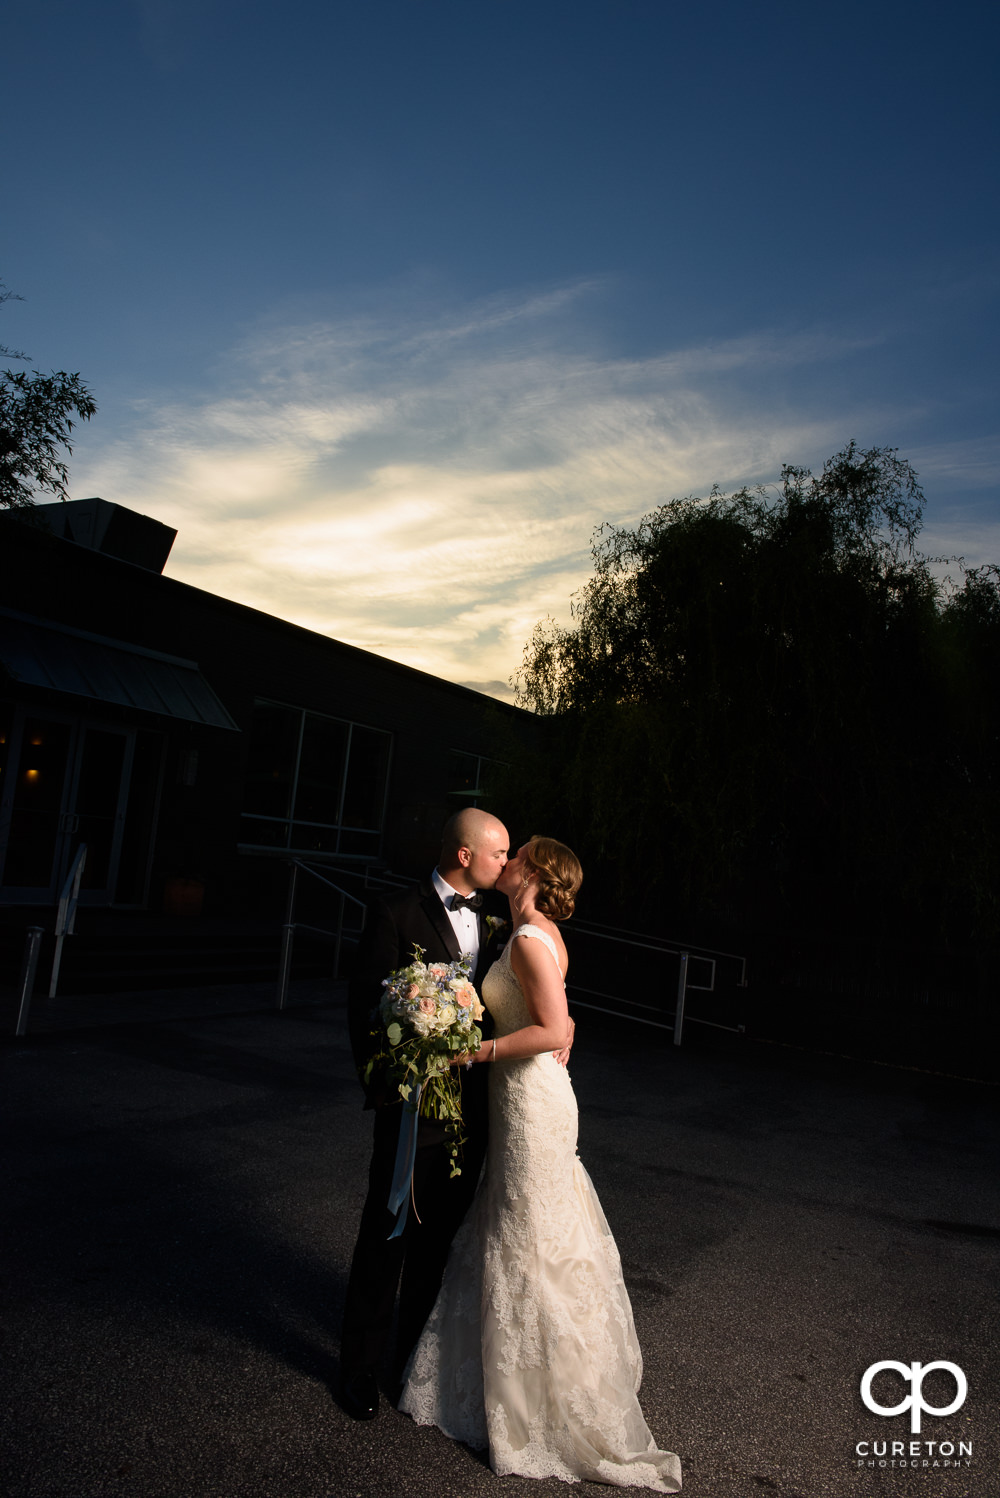 Bride and groom kissing at sunset during their wedding reception at Zen Greenville.